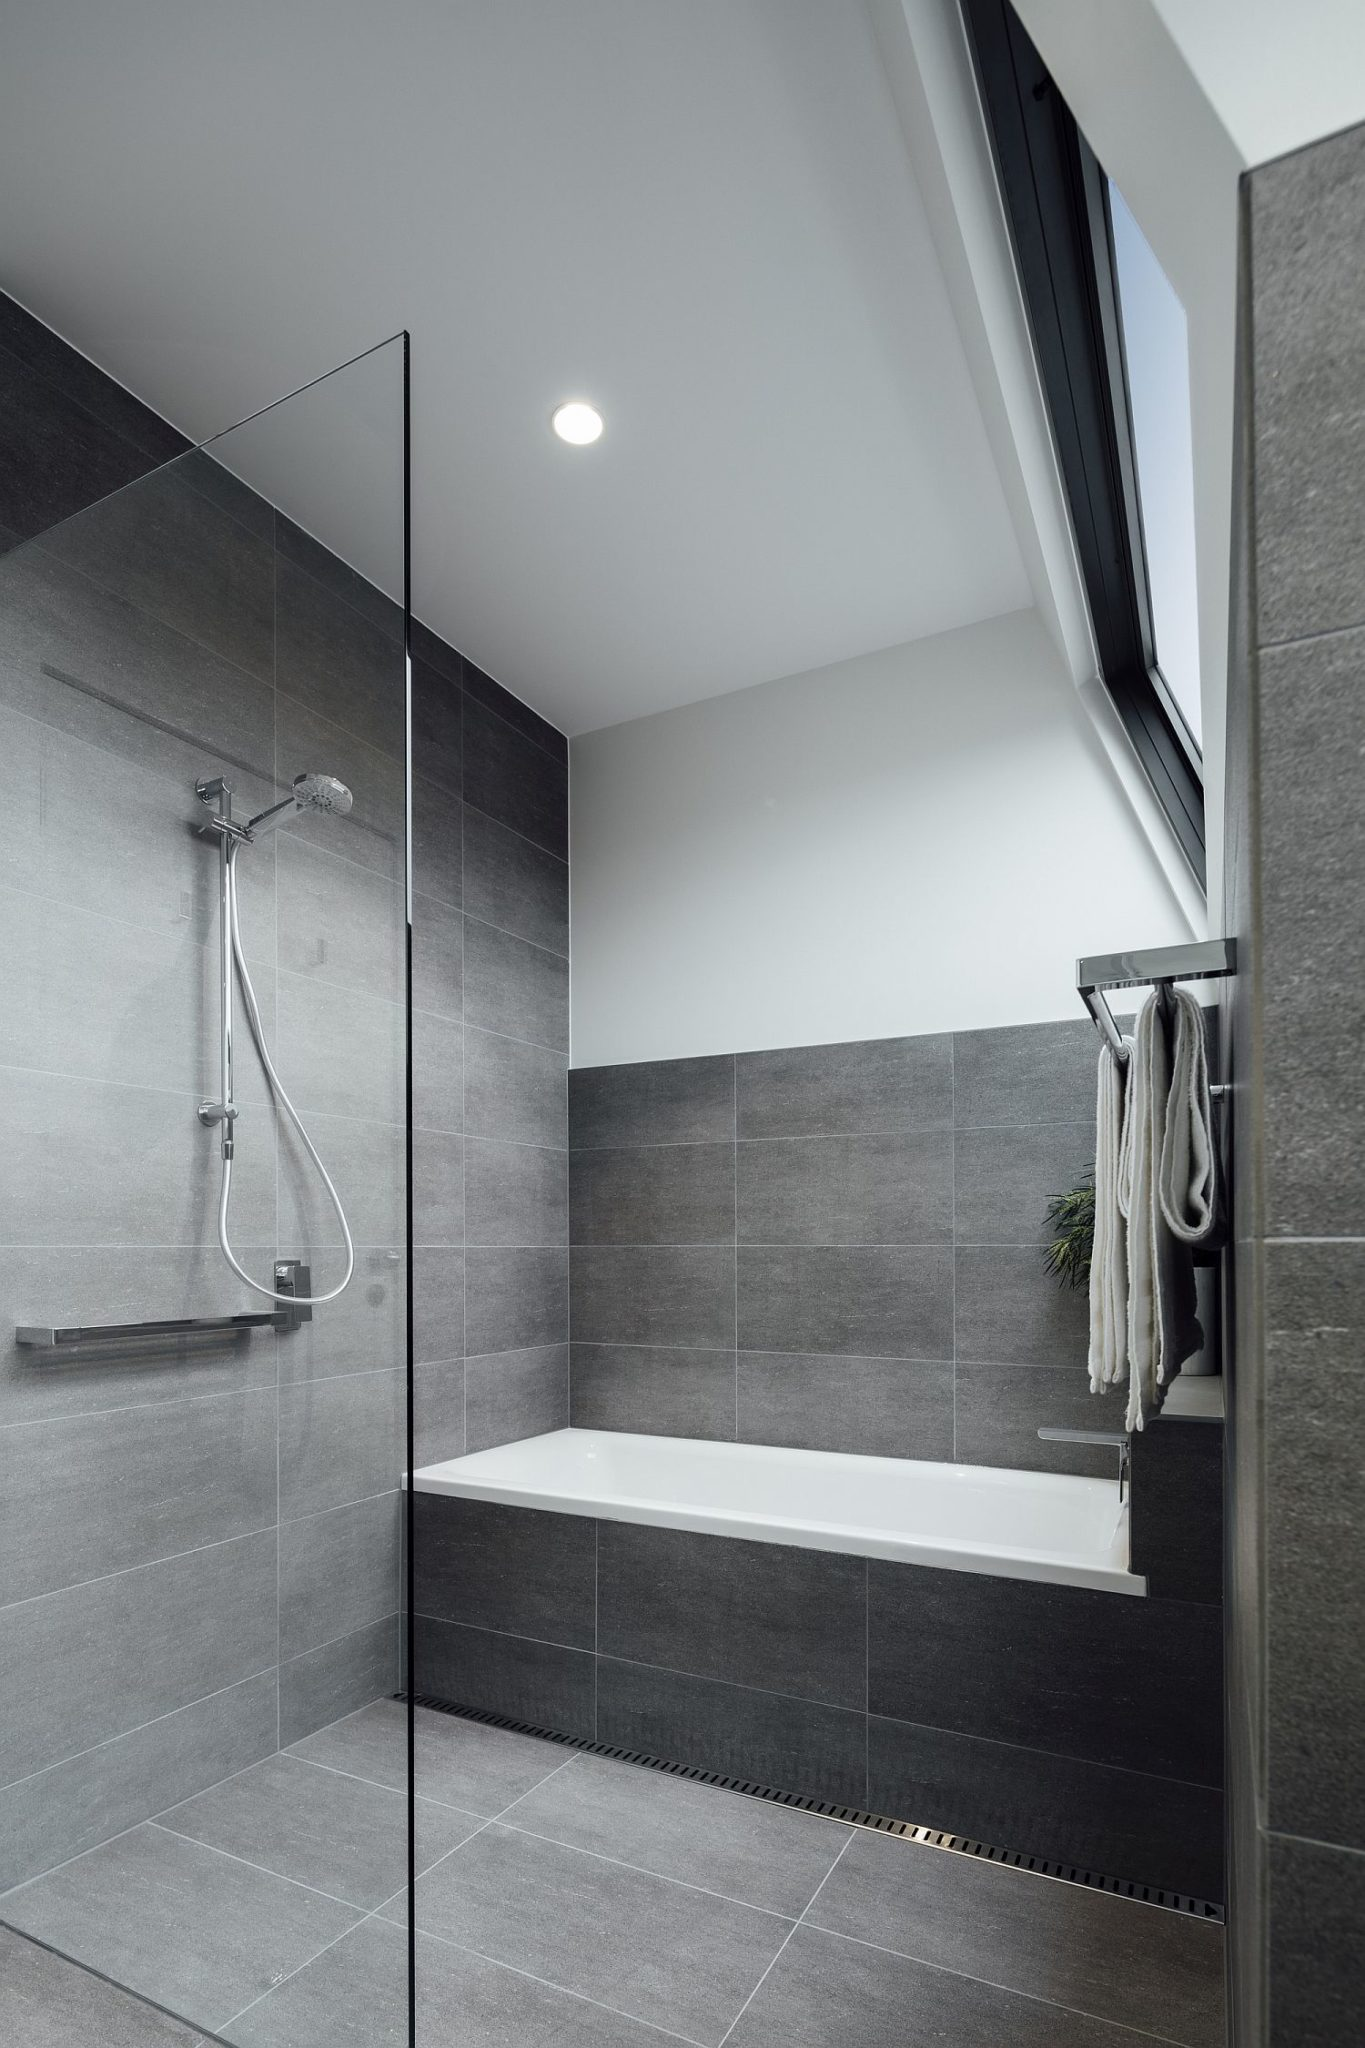 Minimal modern bathroom in white and gray